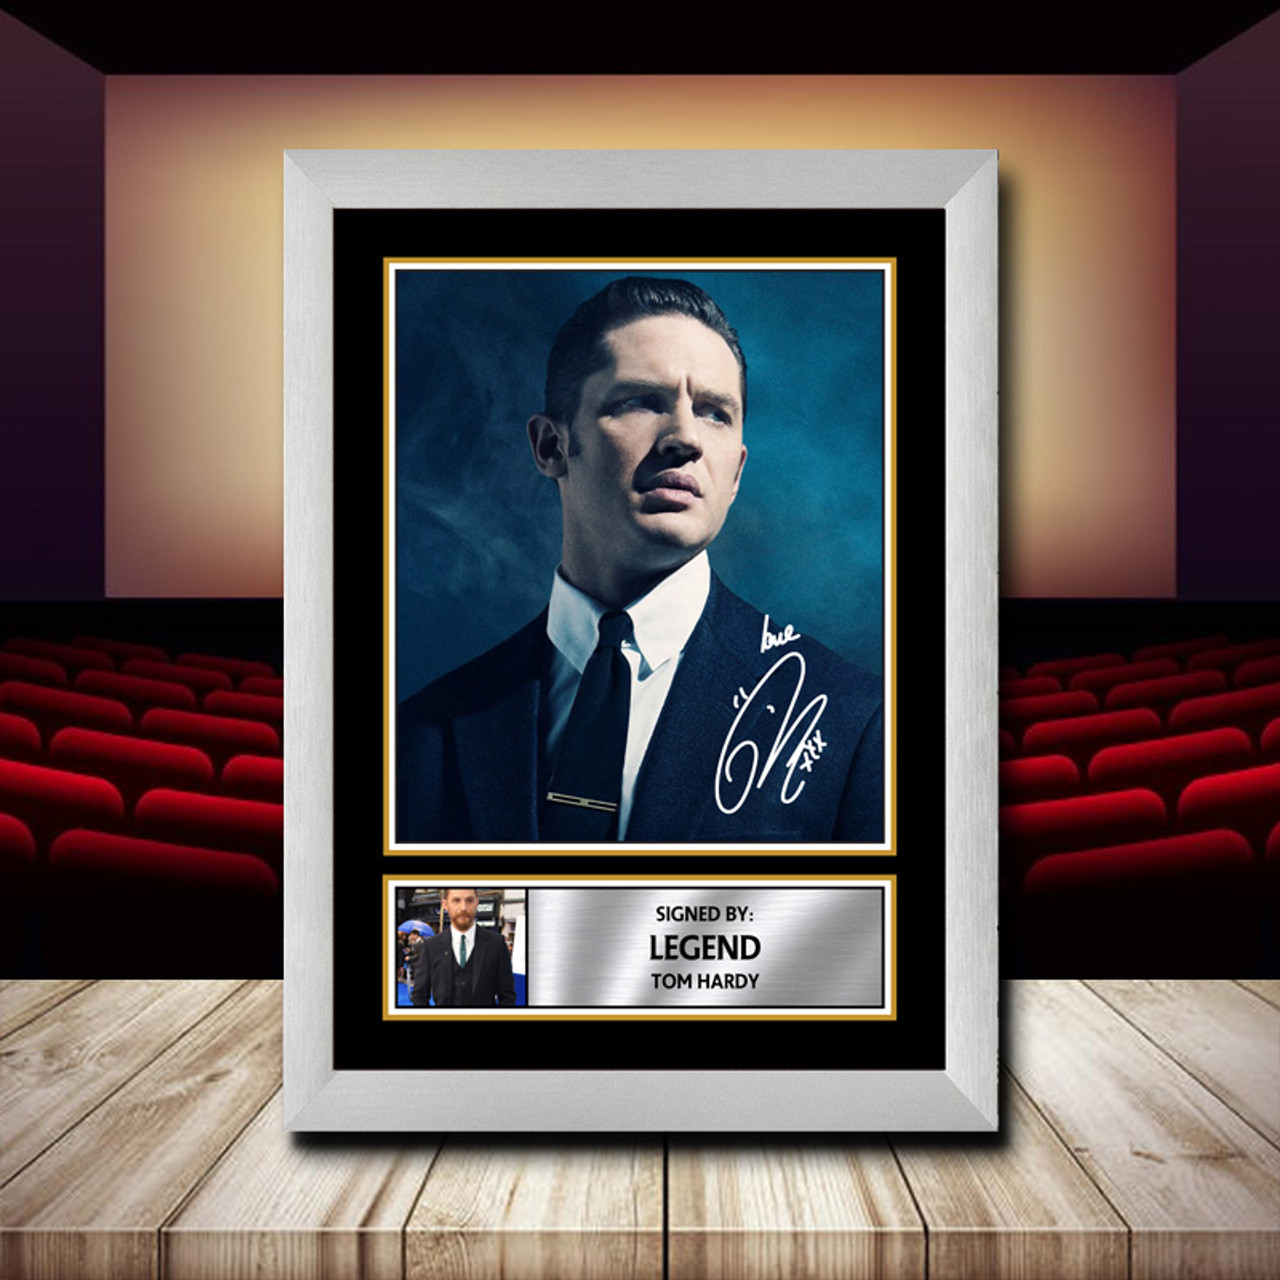 Tom Hardy Signed Framed Poster Autographed Print LEGEND A1 A2 A3 A4 FILM